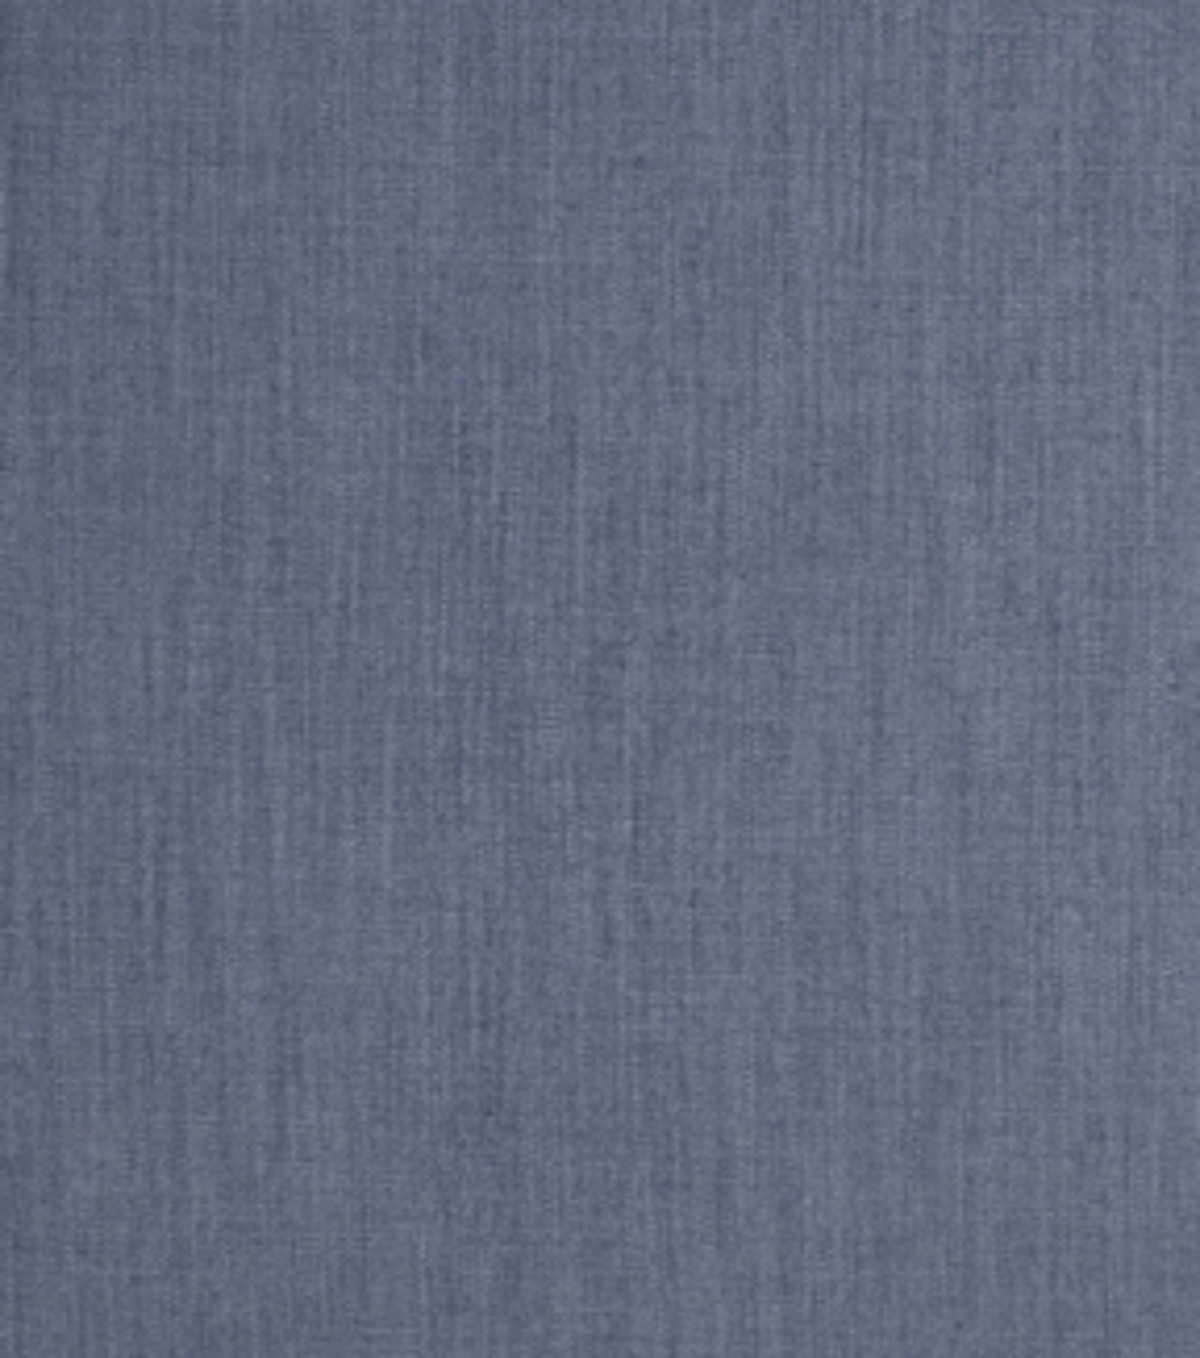 Home Decor 8\u0022x8\u0022 Fabric Swatch-Signature Series Media Delft